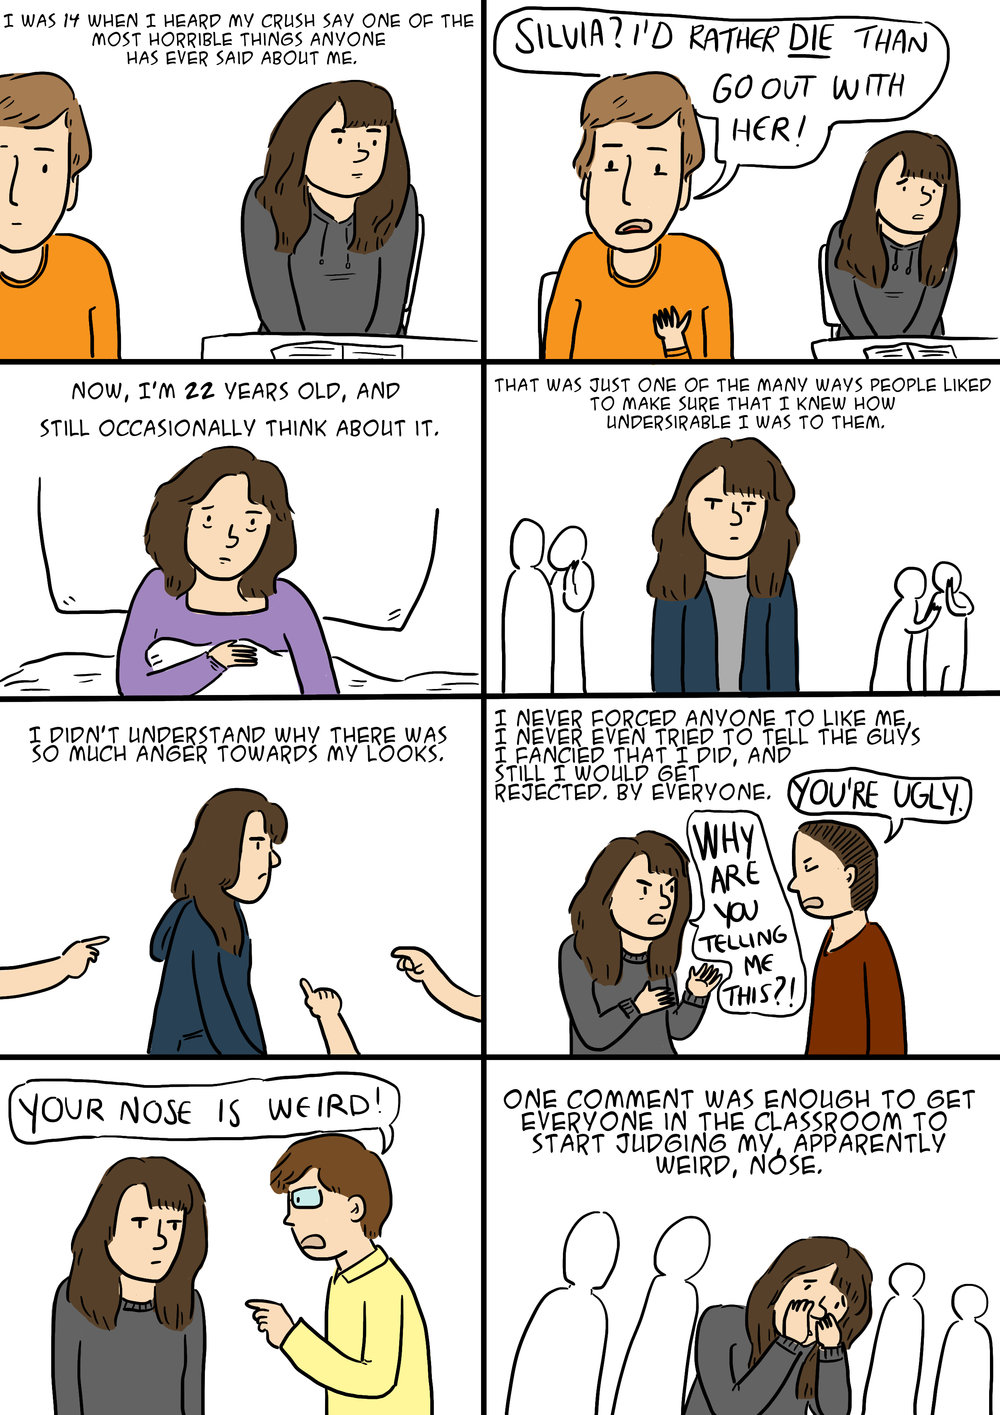 A Journey Through Self Image   Comic about bullying for website The Establishment.